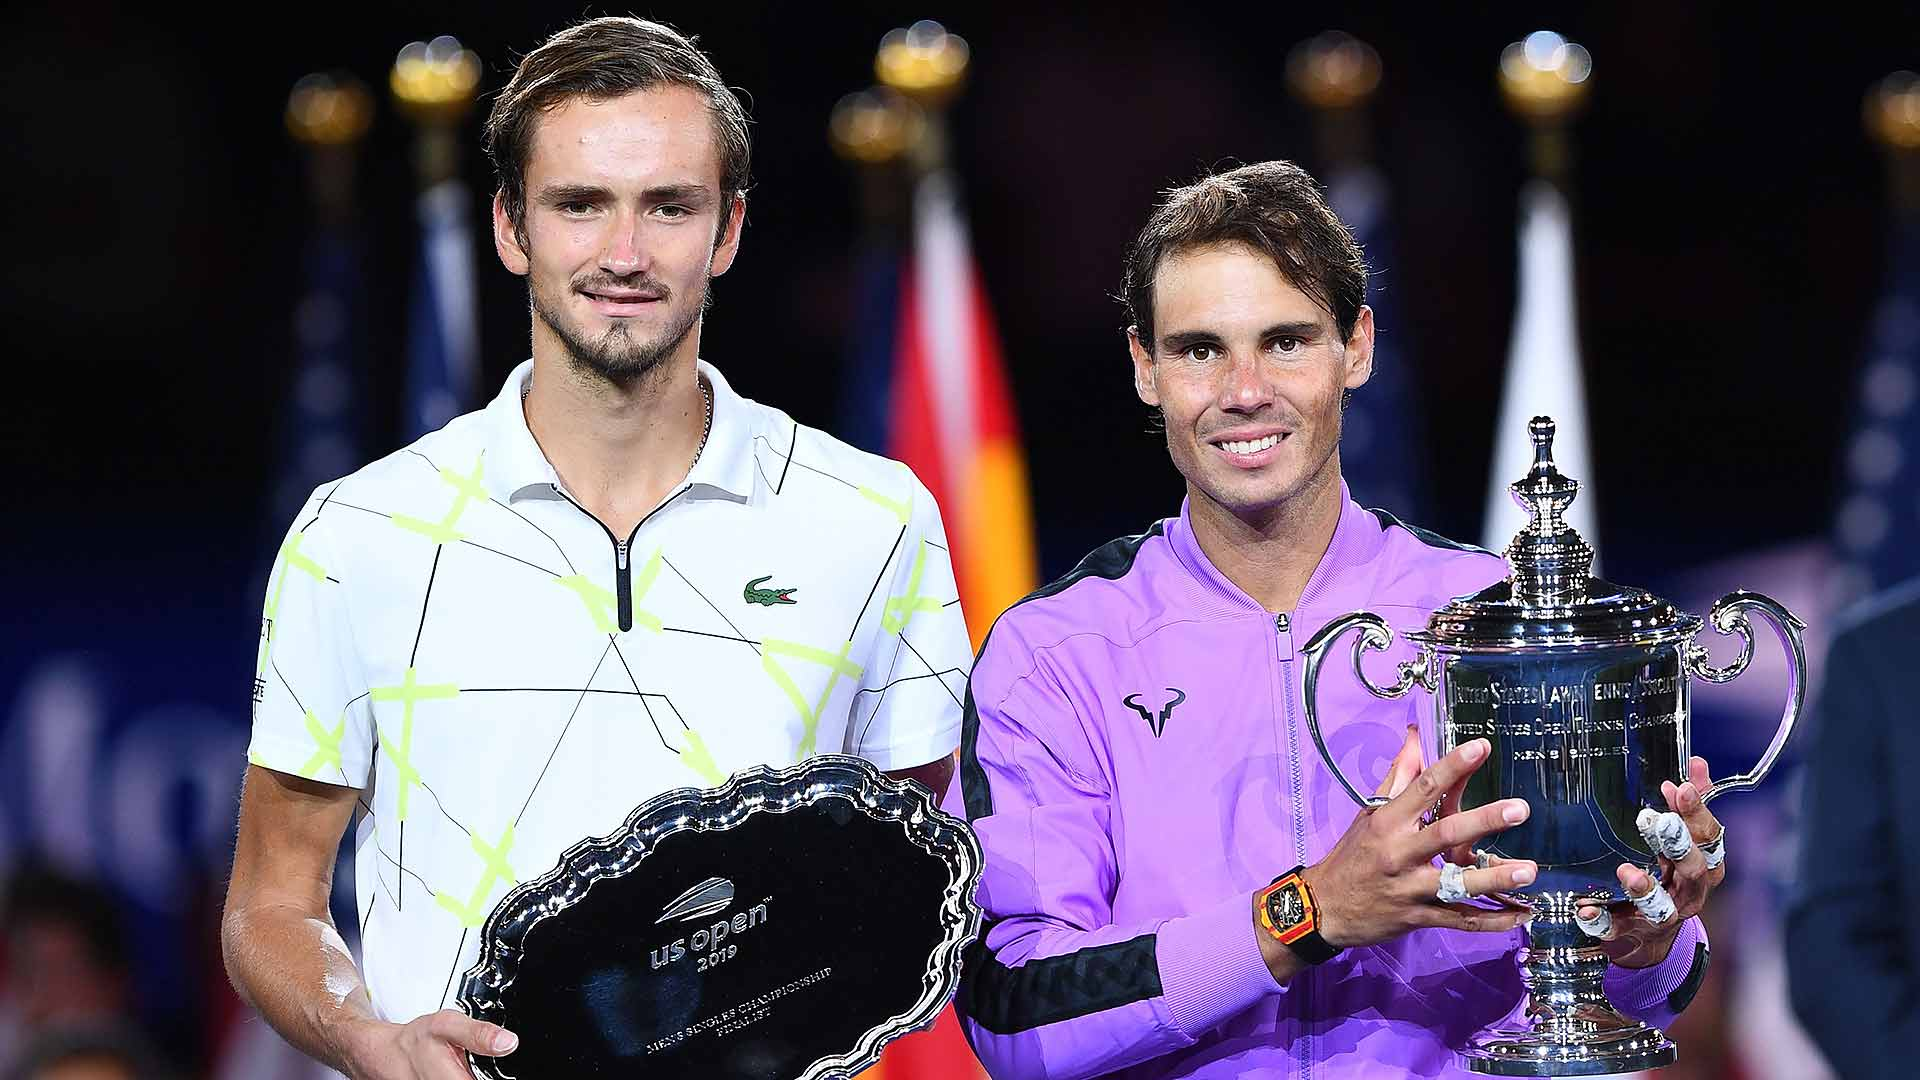 Daniil Medvedev and Rafael Nadal helped the US Open set a new attendance record this year.